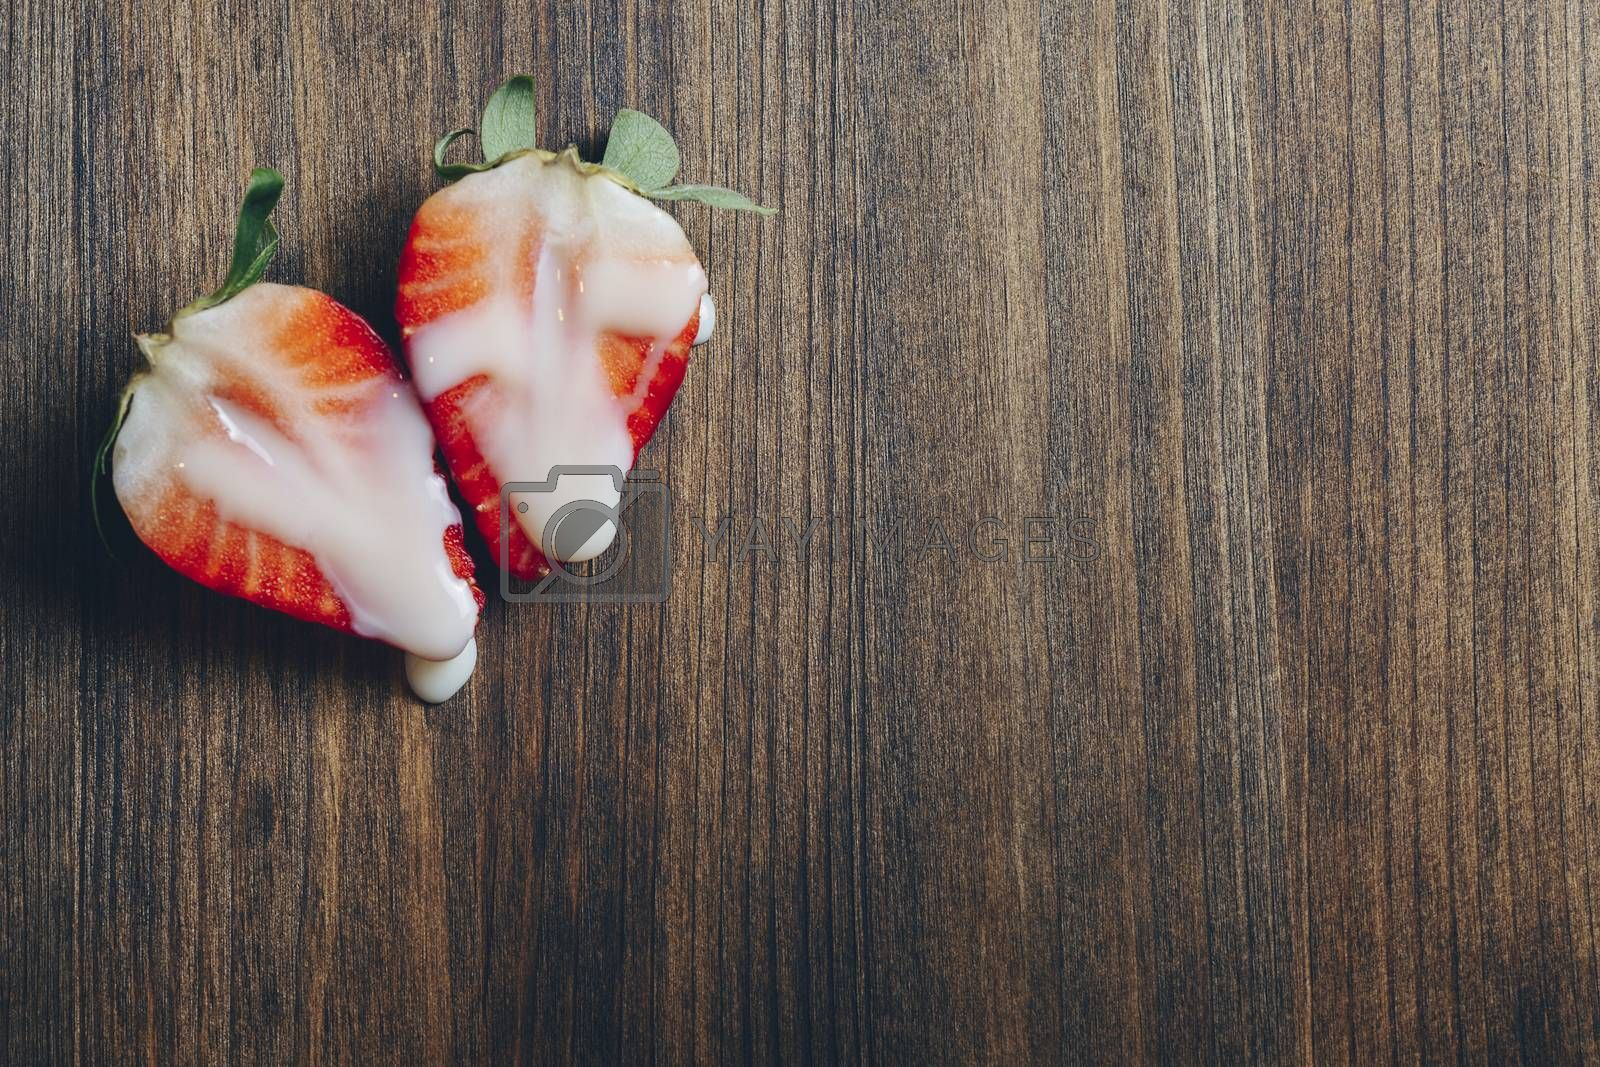 metaphor of sex with strawberries and milk on a wooden table, top view, copy space for text